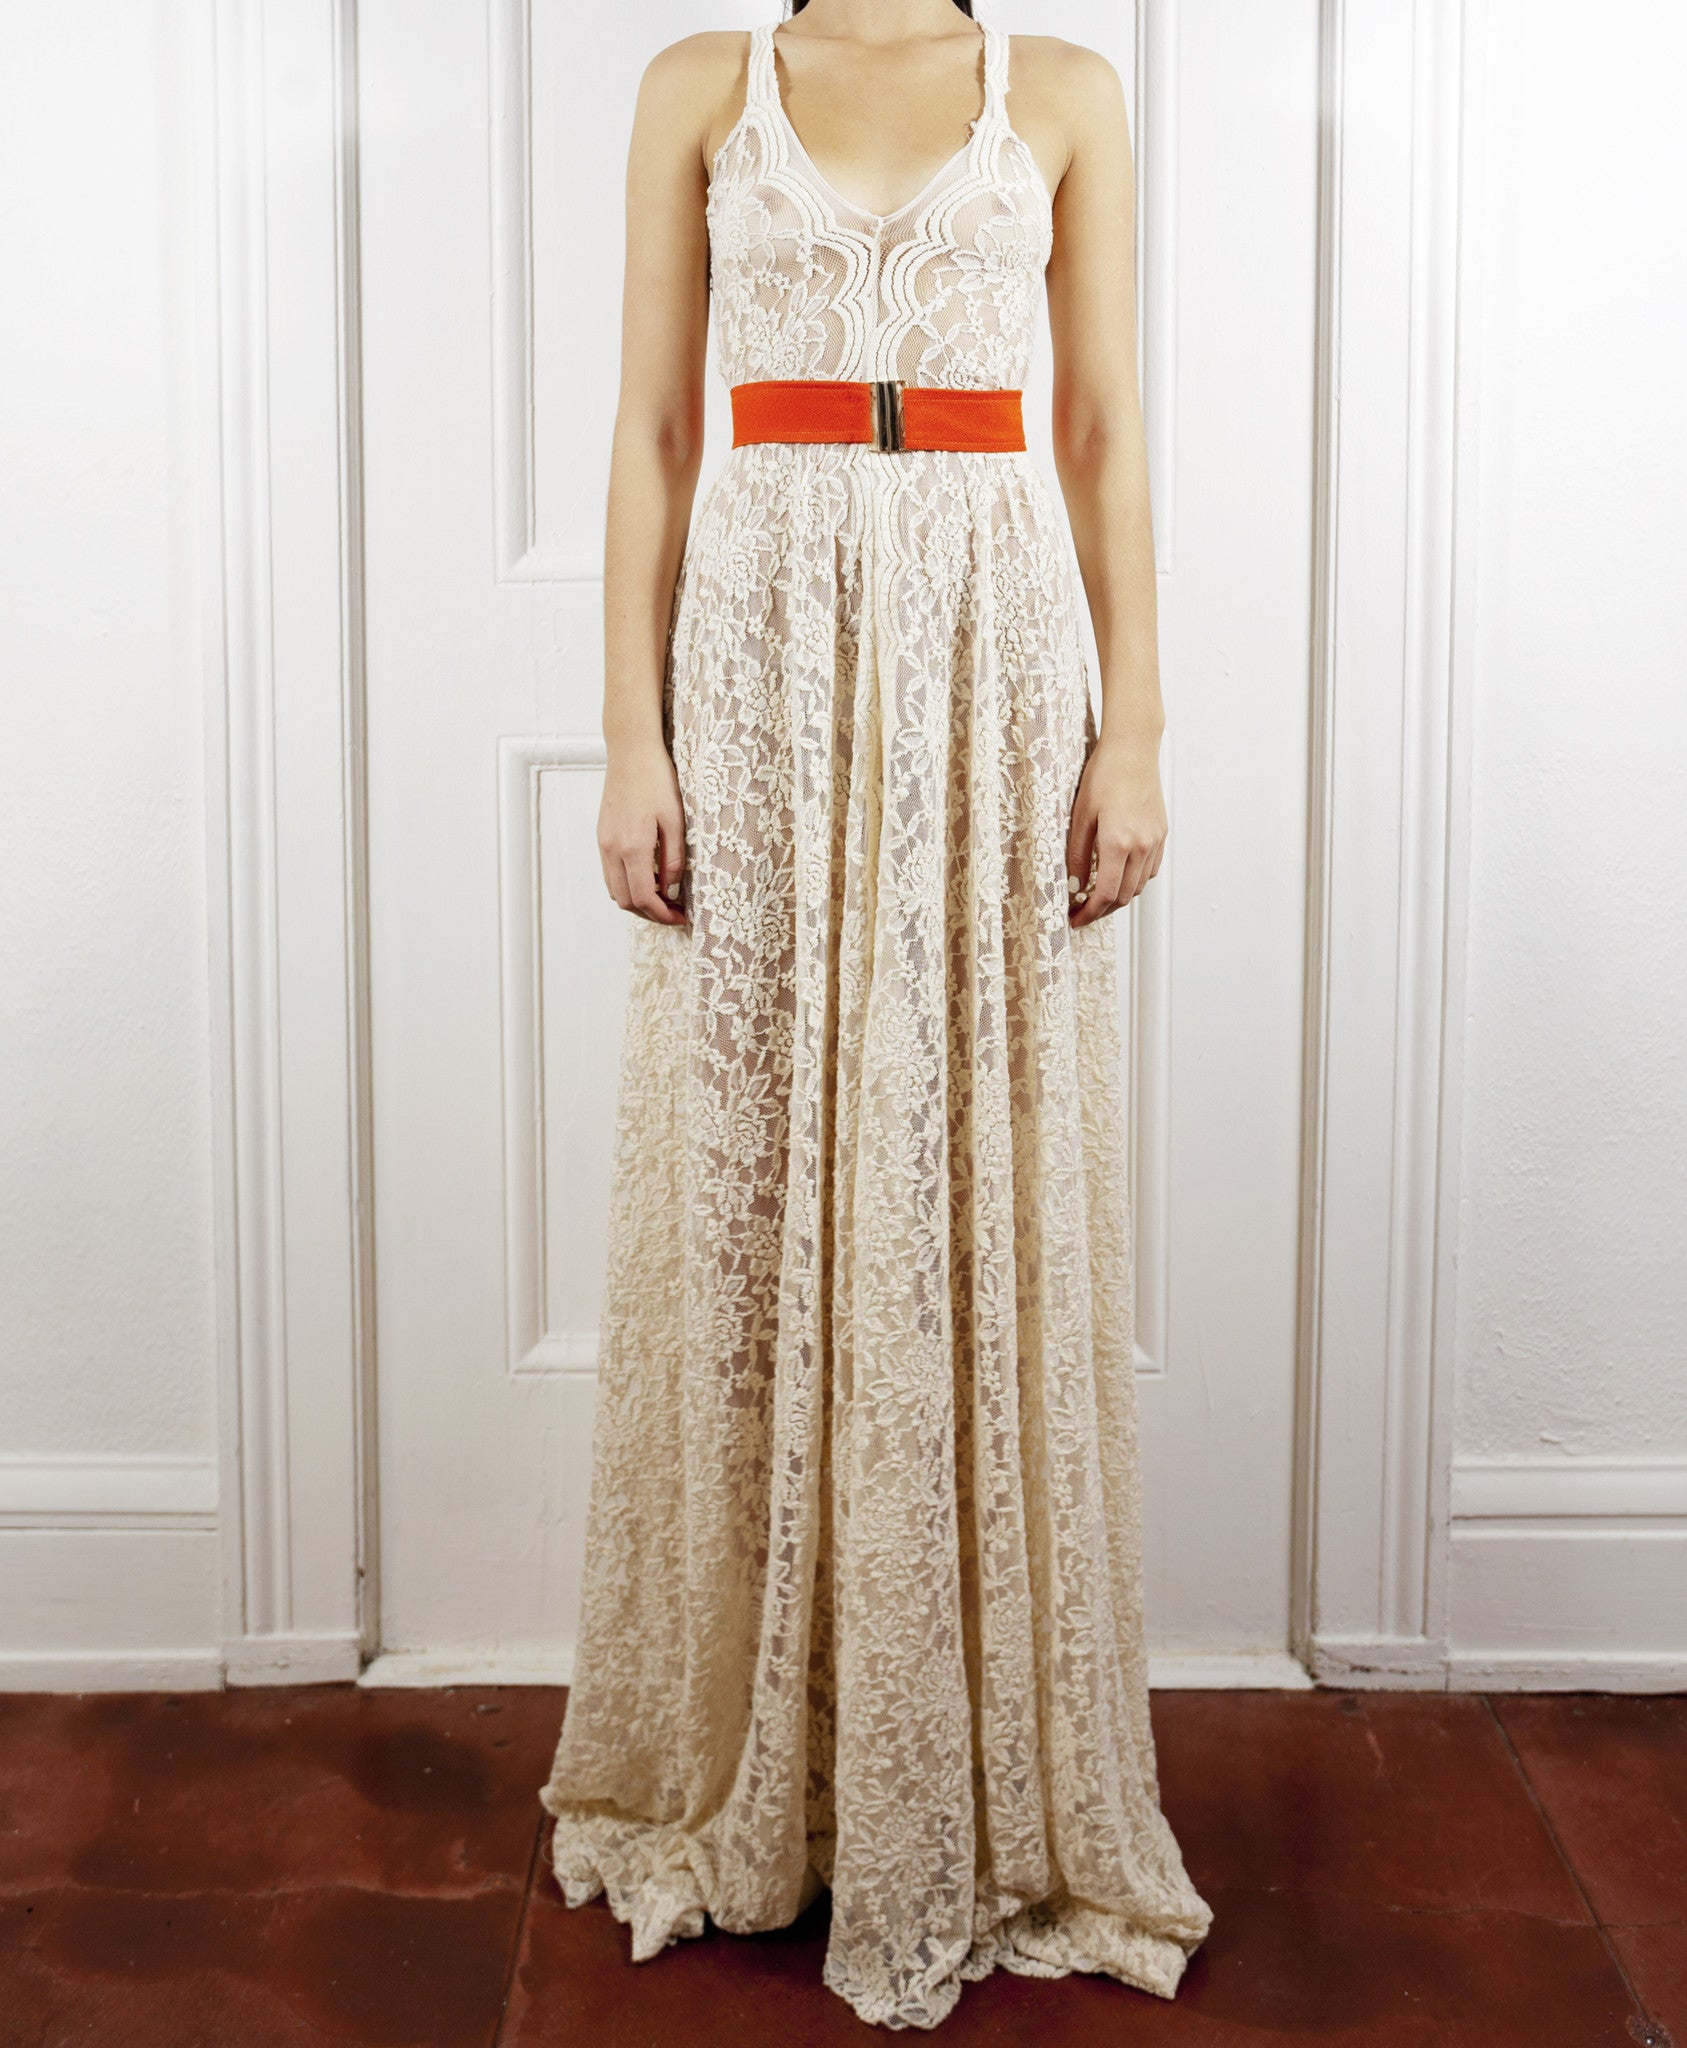 The Rachael Lace Maxi Dress